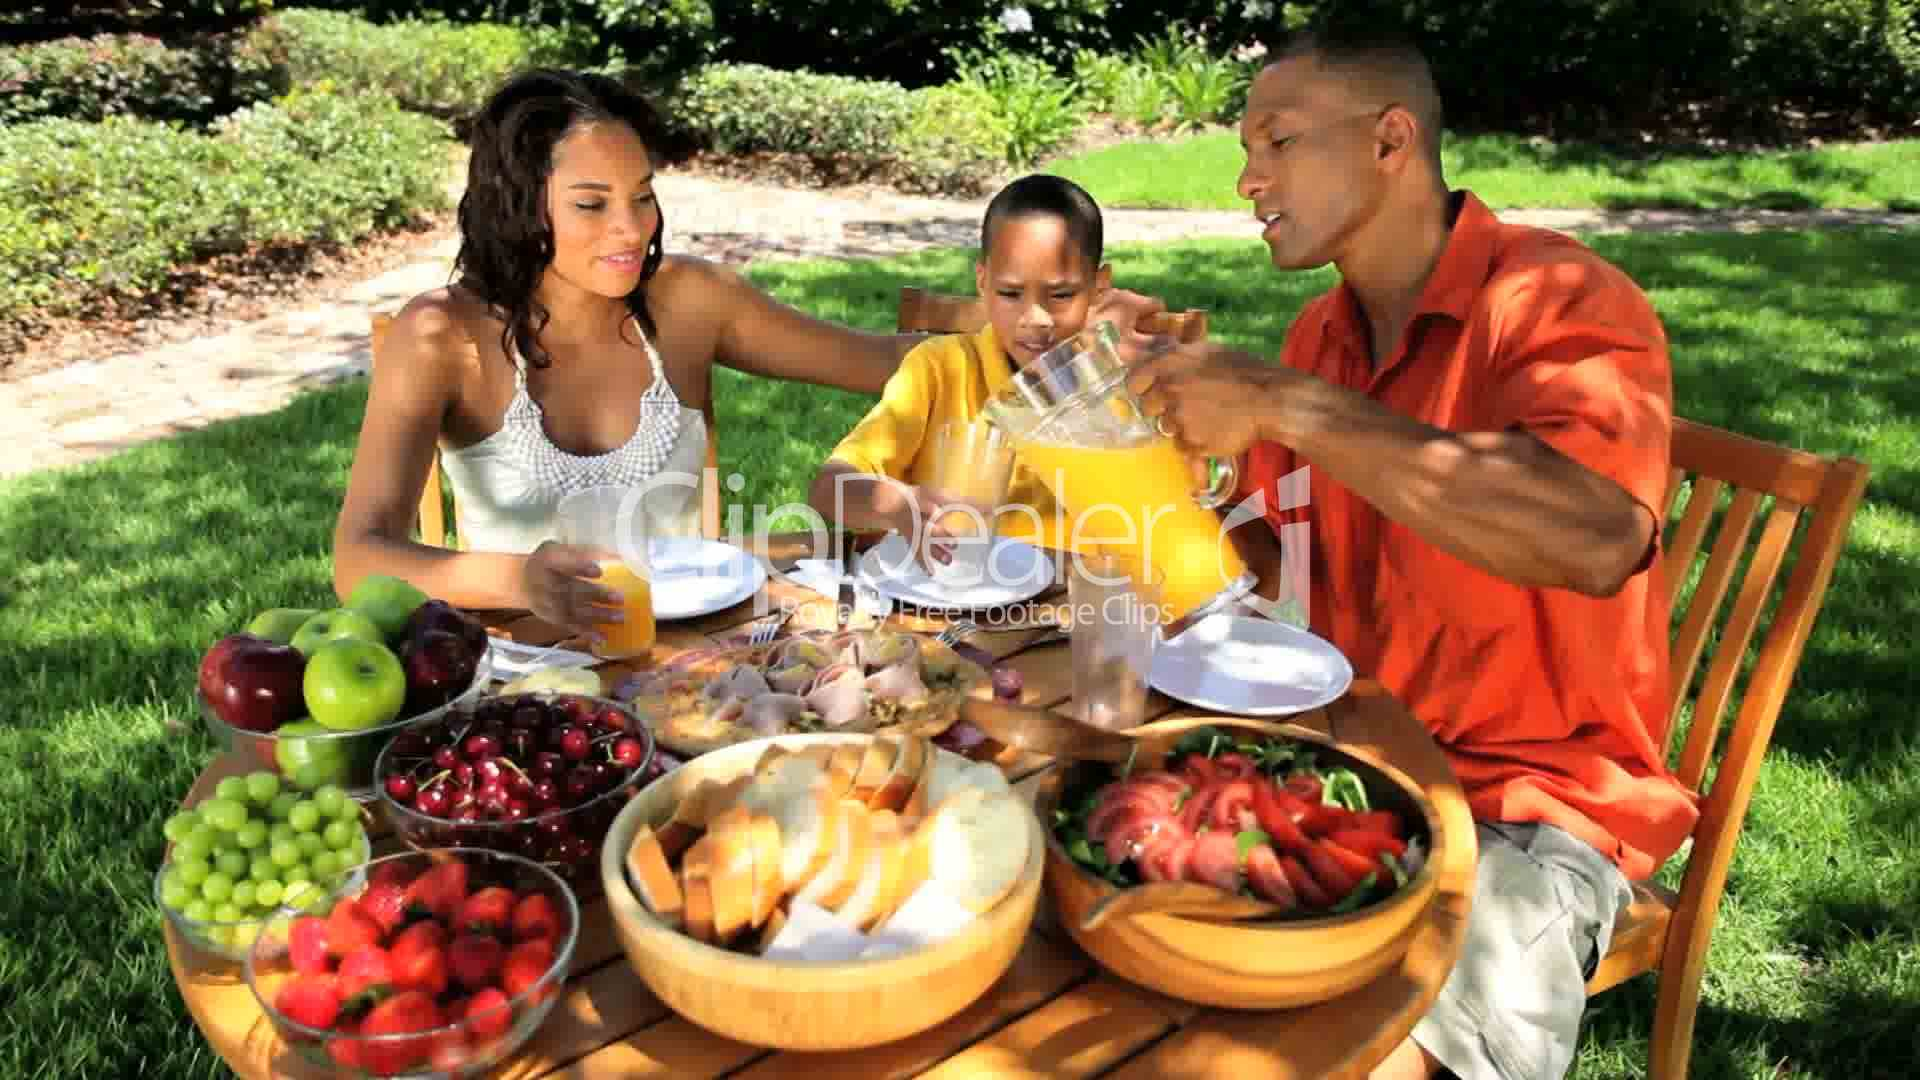 healthy eating habits of african americans The impact of unhealthy eating habits on the  of unhealthy eating habits,  to healthy eating options, african-americans are also less likely.